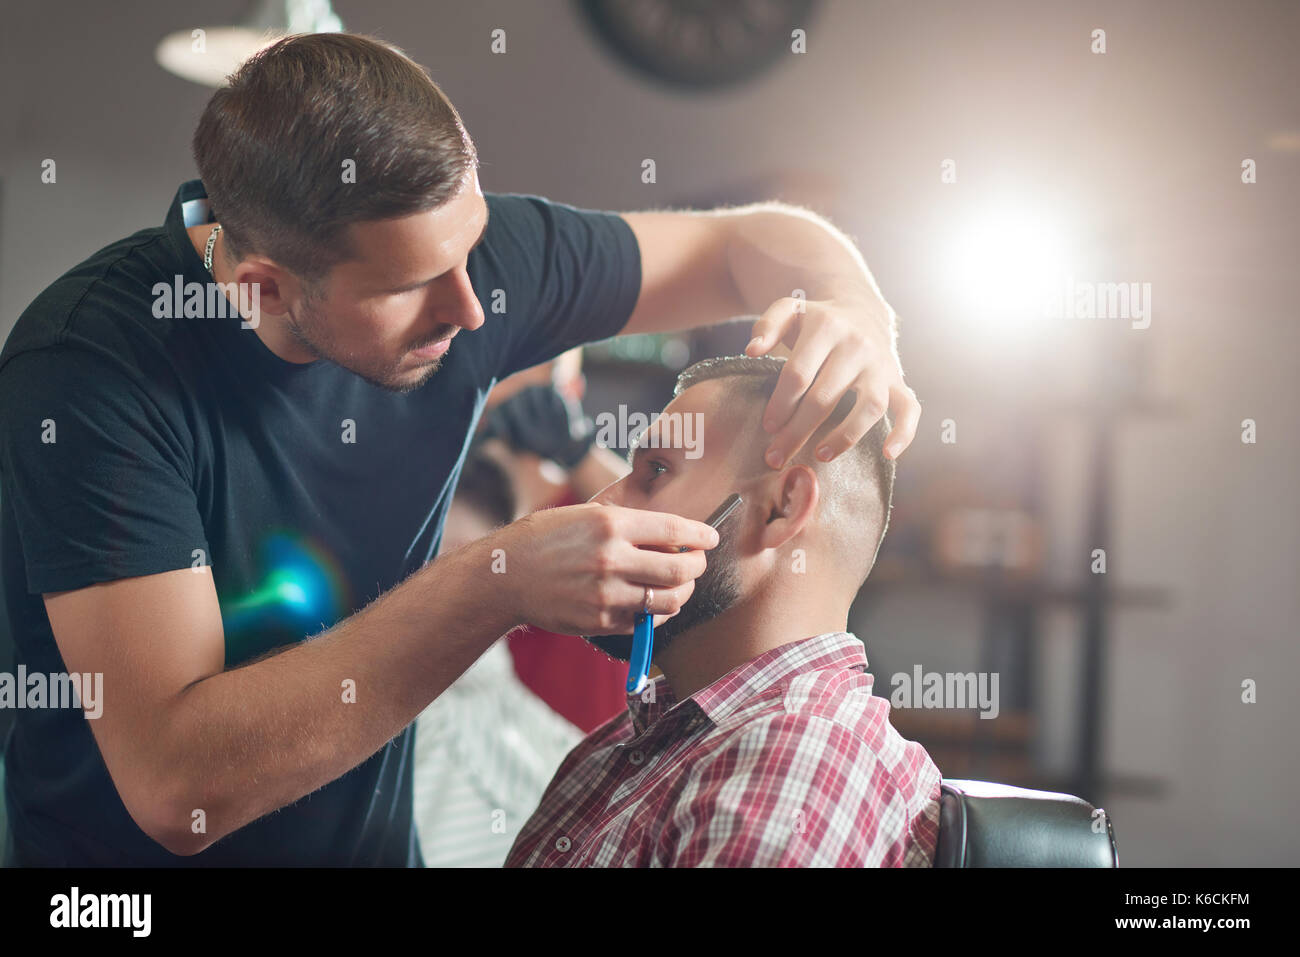 Young man at the barbershop - Stock Image